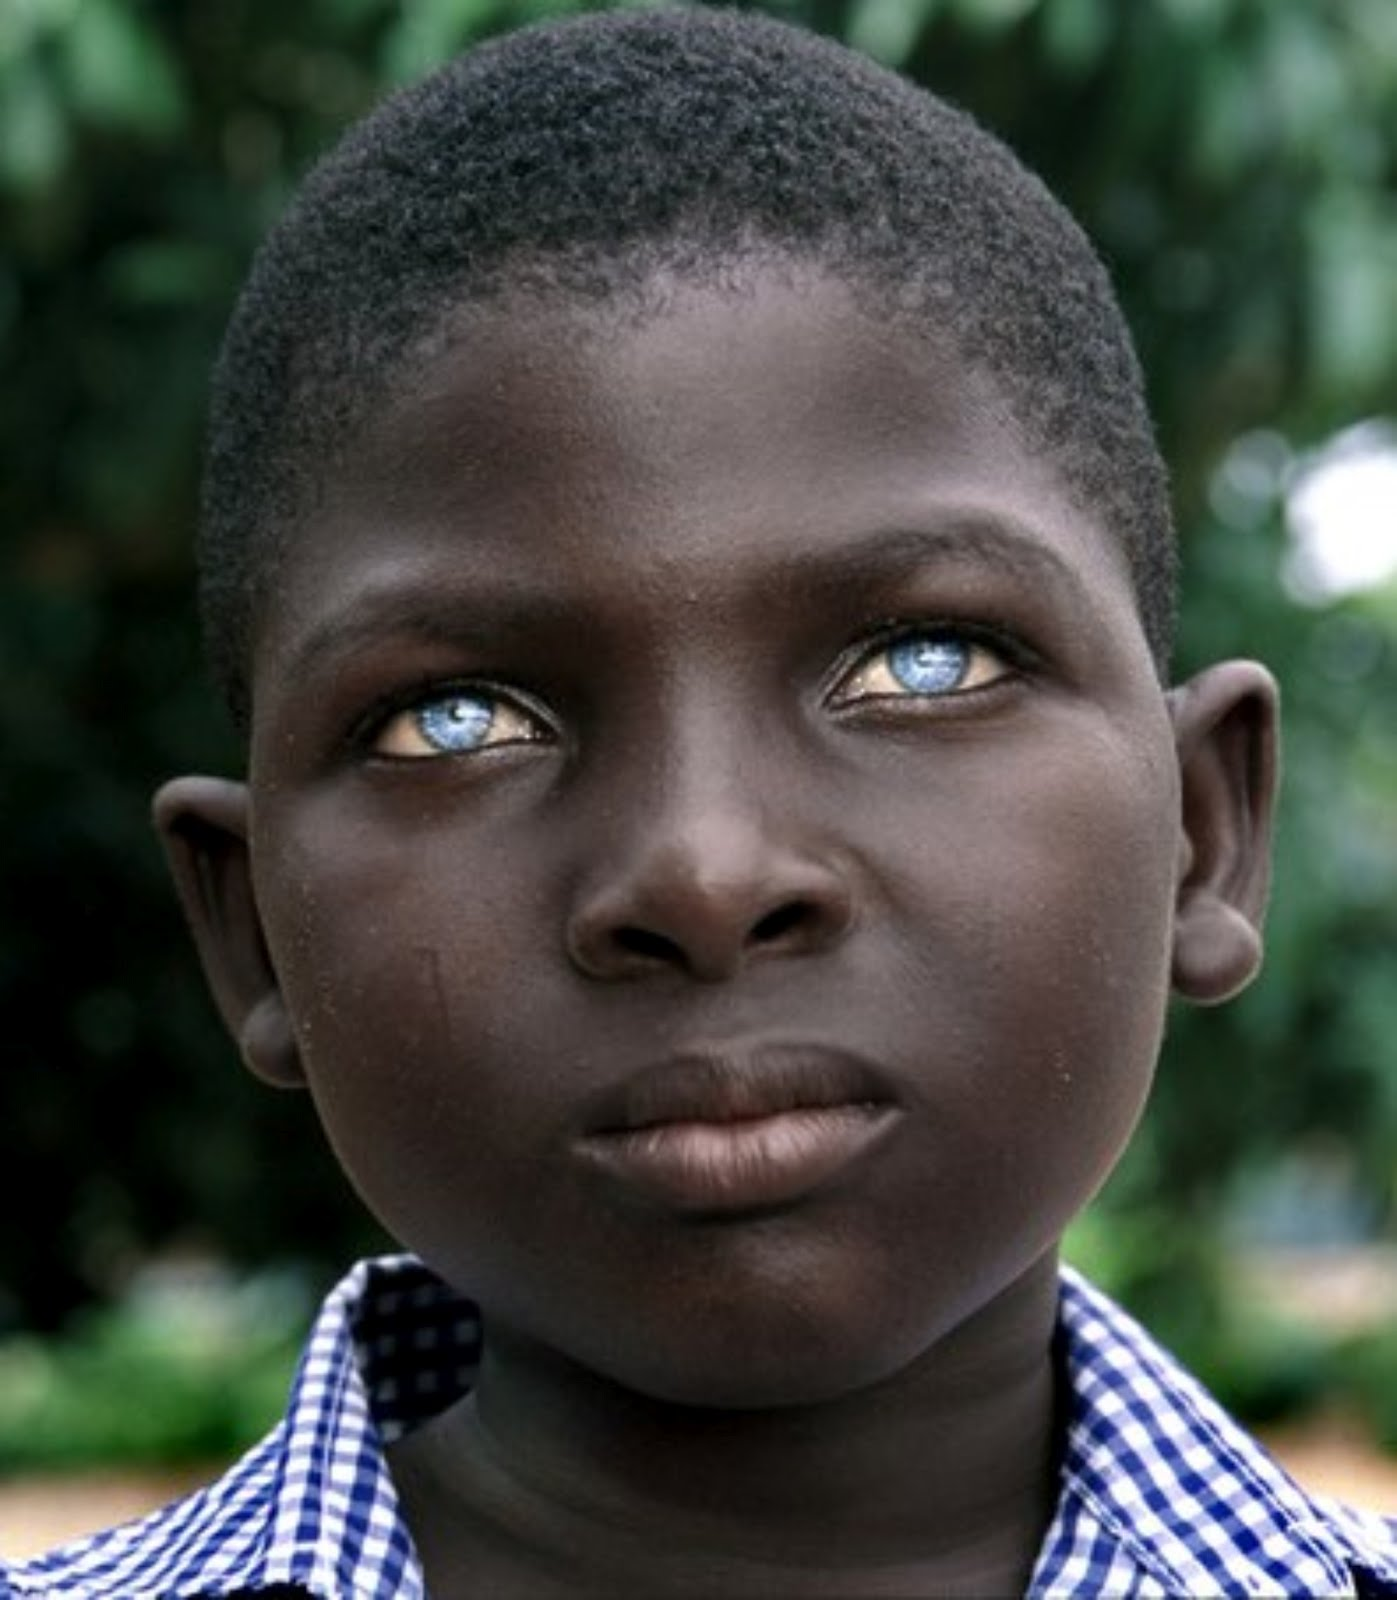 African Black People with Blue Eyes